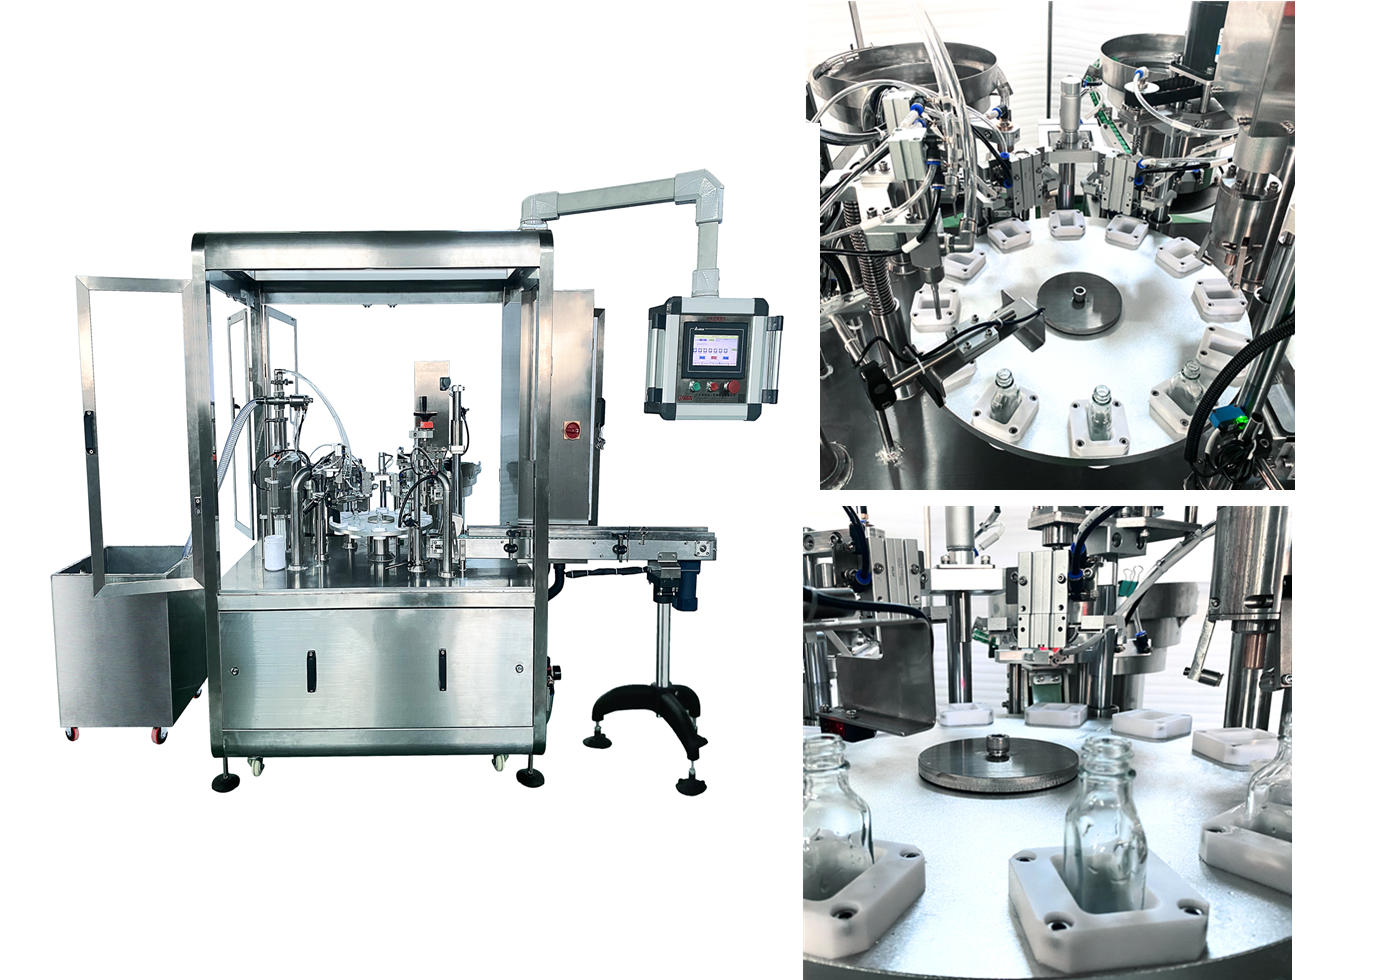 2-nozzle large dosage liquid filling-capping machine for glass/plastic bottles stoppered